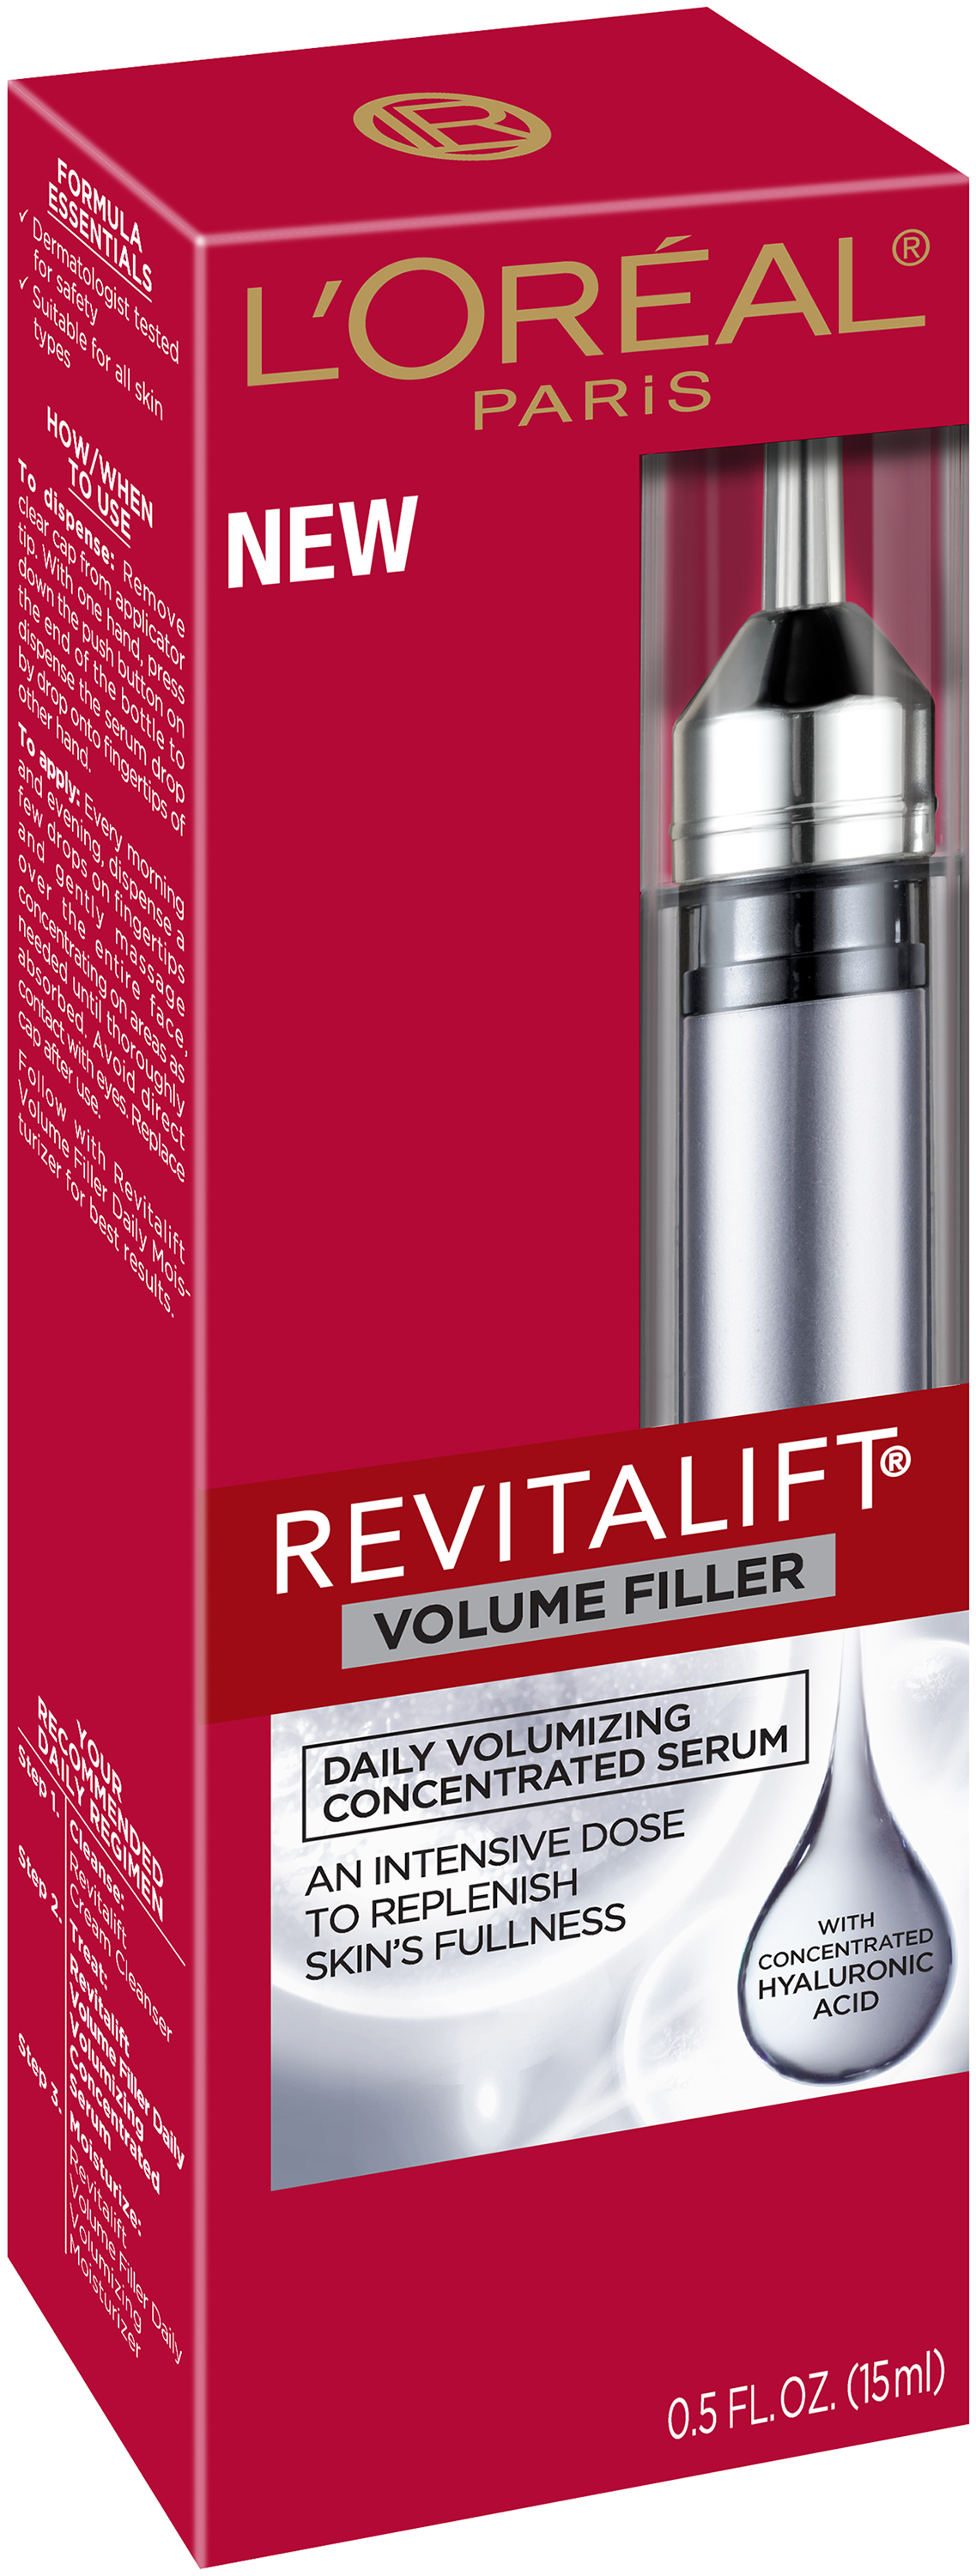 L'Oréal® Paris Revitalift Daily Re-Volumizing Concentrated Serum for All Skin Types 0.5 fl. oz. Tube